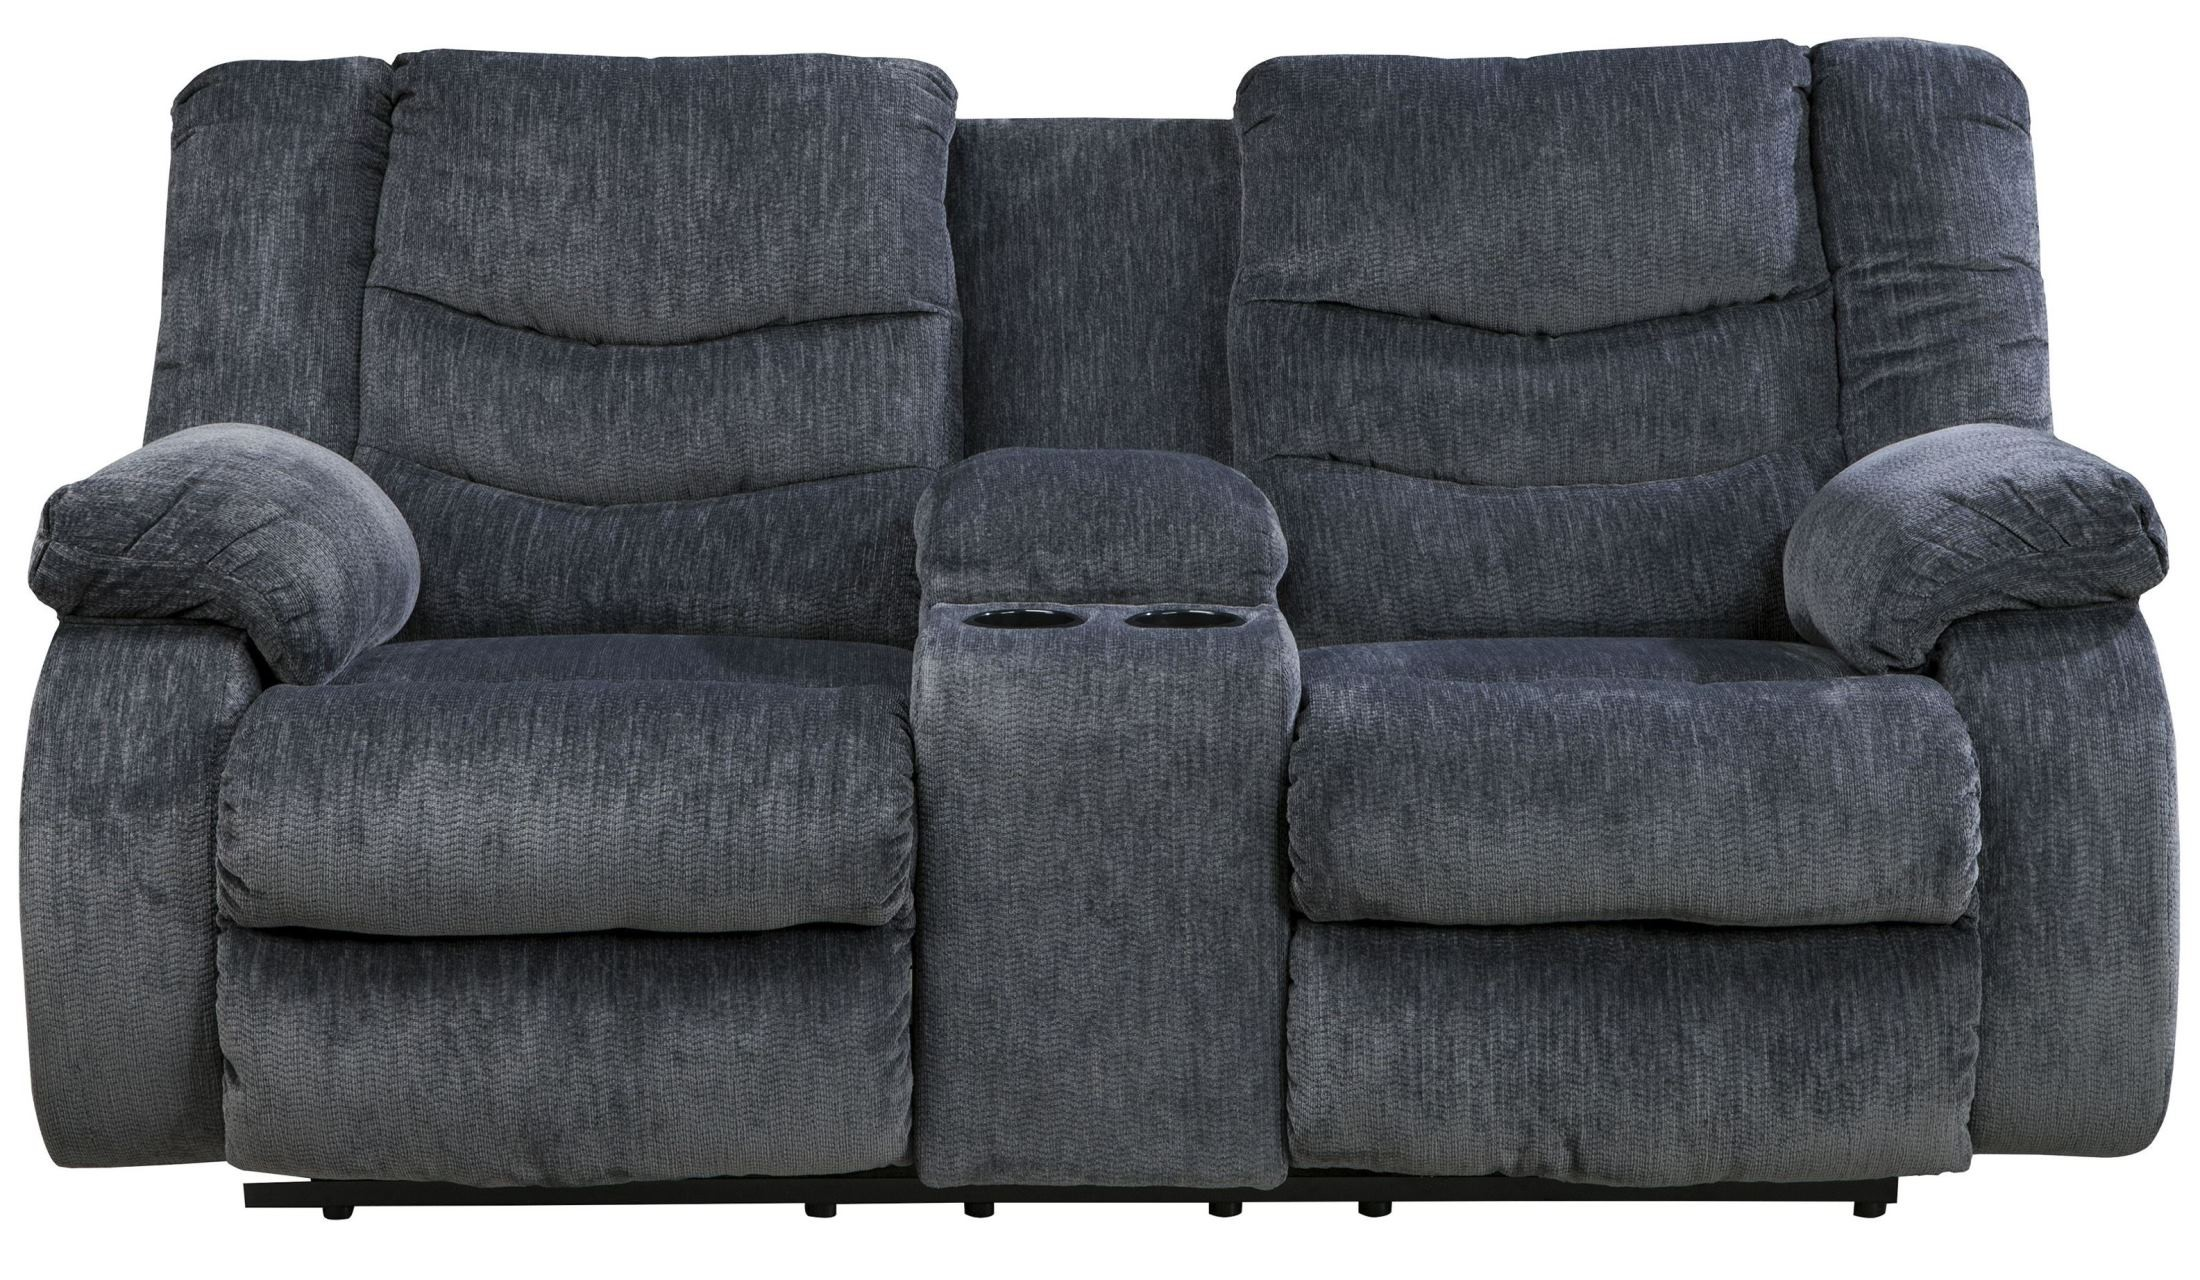 Garek Blue Double Reclining Loveseat With Console From Ashley 9200194 Coleman Furniture